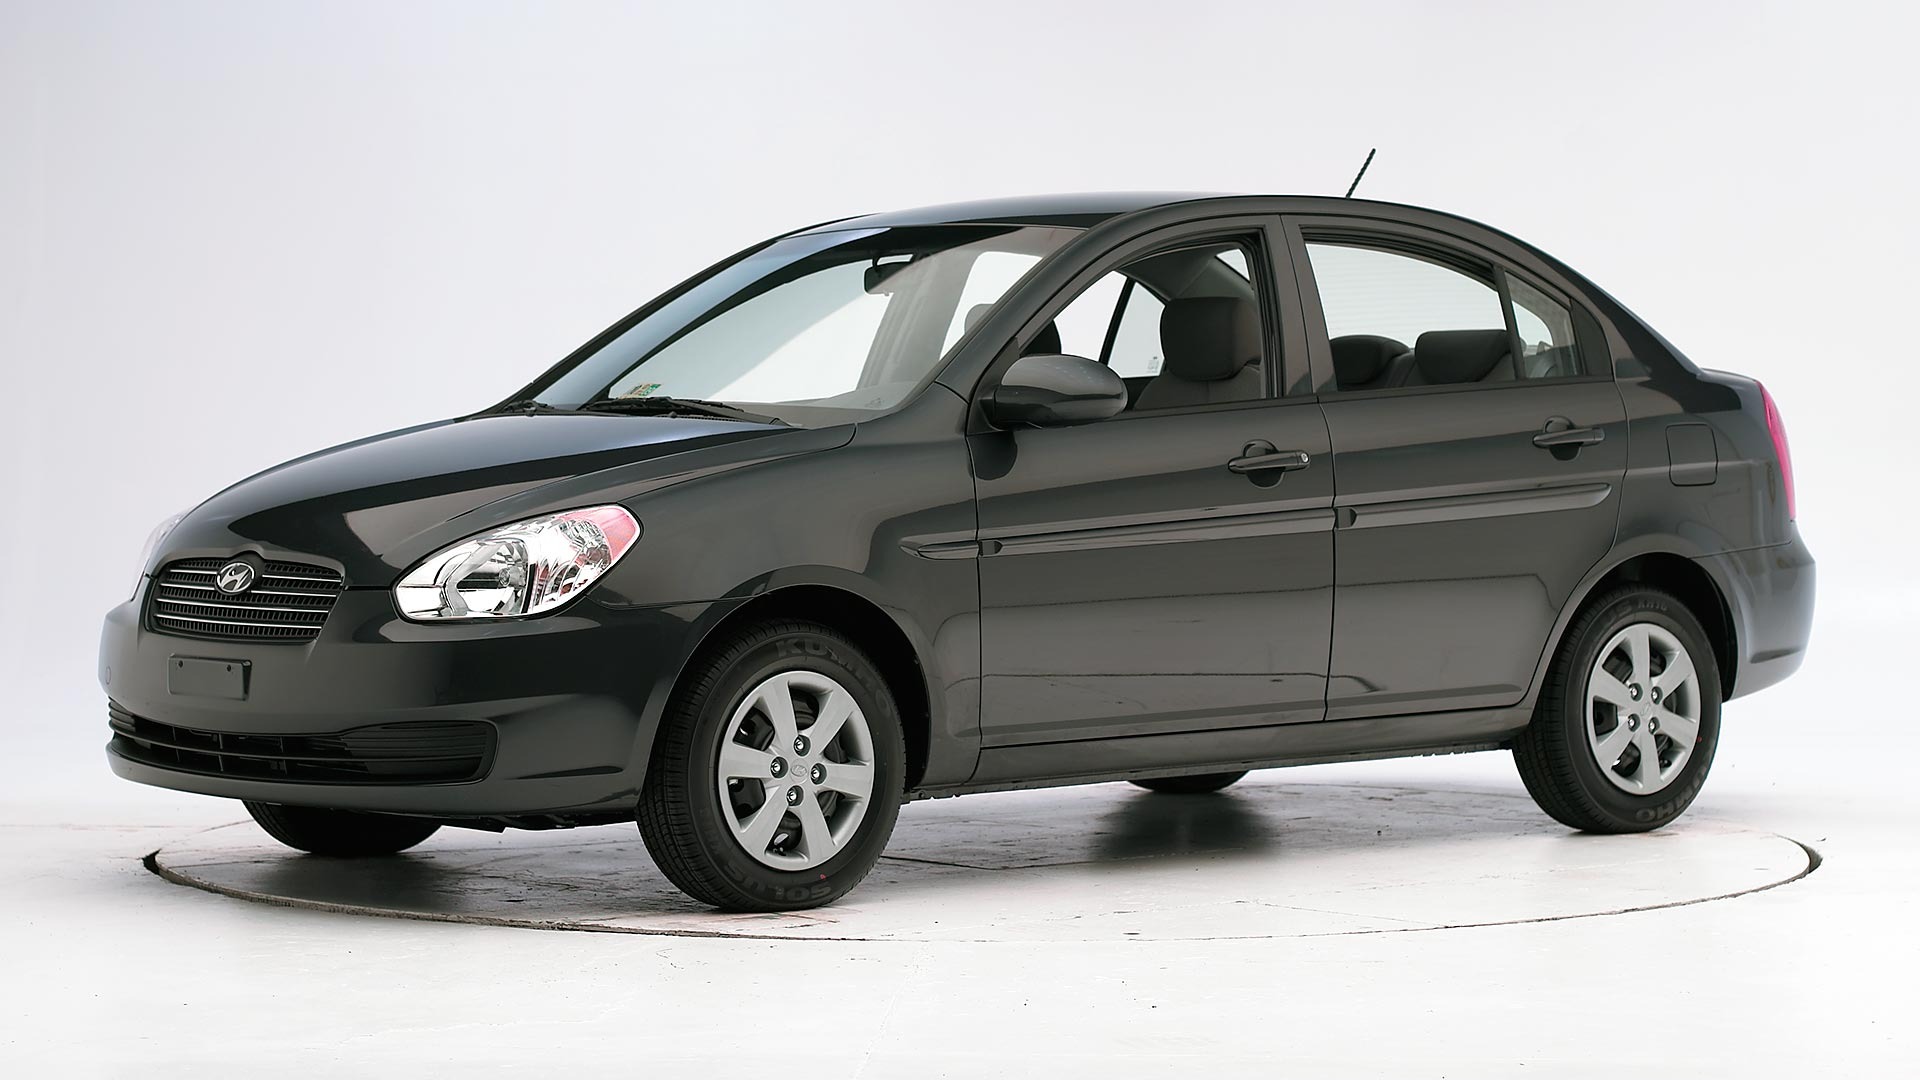 2009 Hyundai Accent 4-door sedan